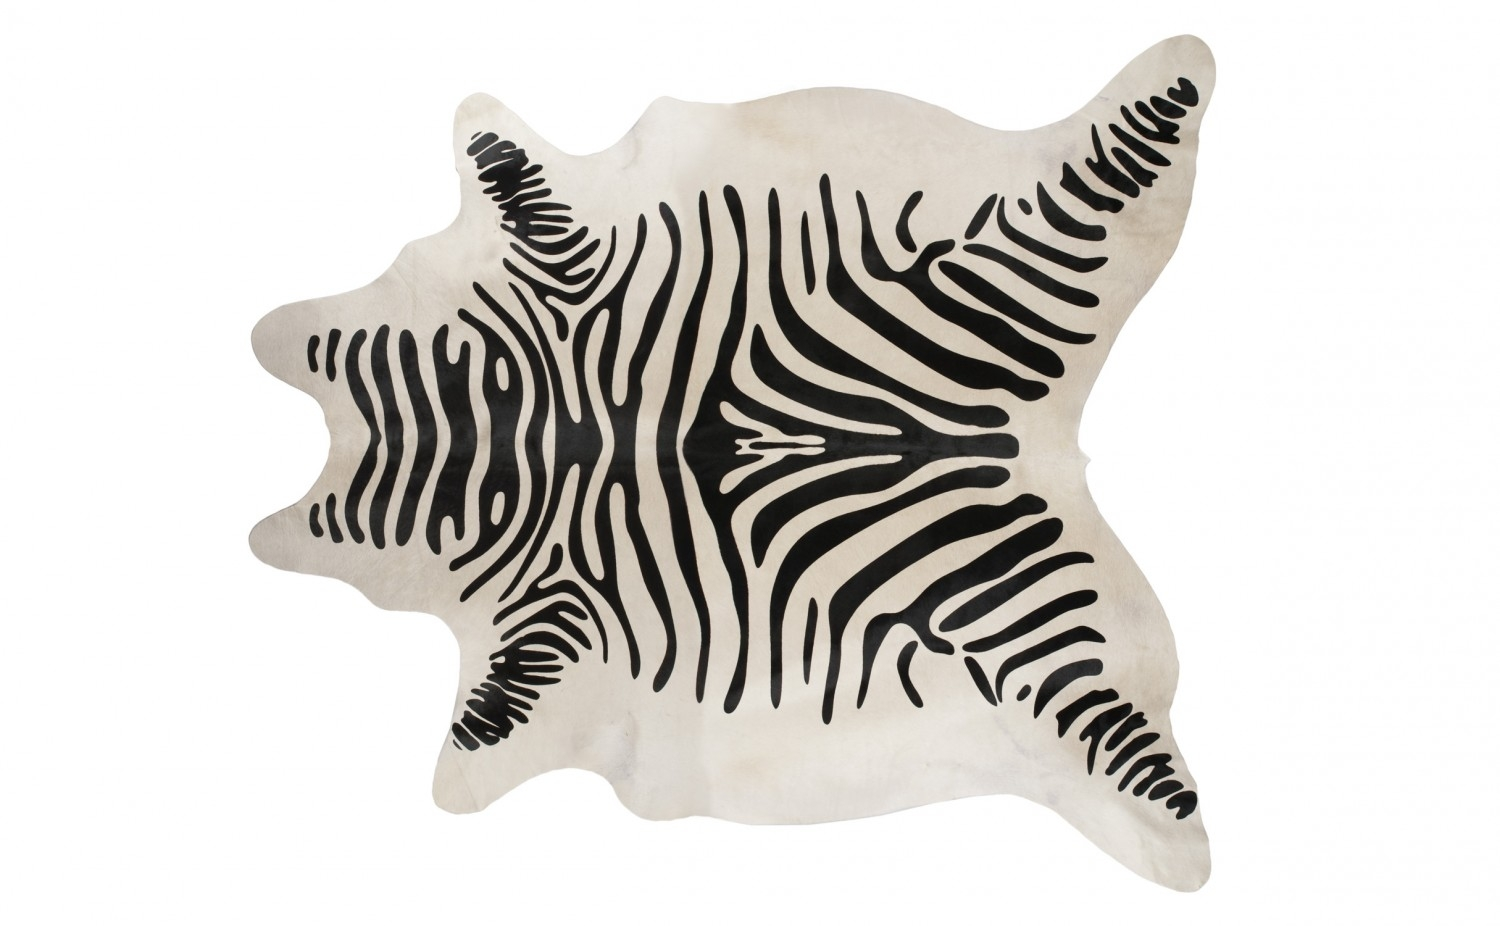 Rugs Animal Print Rug Cowhide Zebra Rug Zebra Skin Rug Within Zebra Skin Rugs (Image 8 of 15)